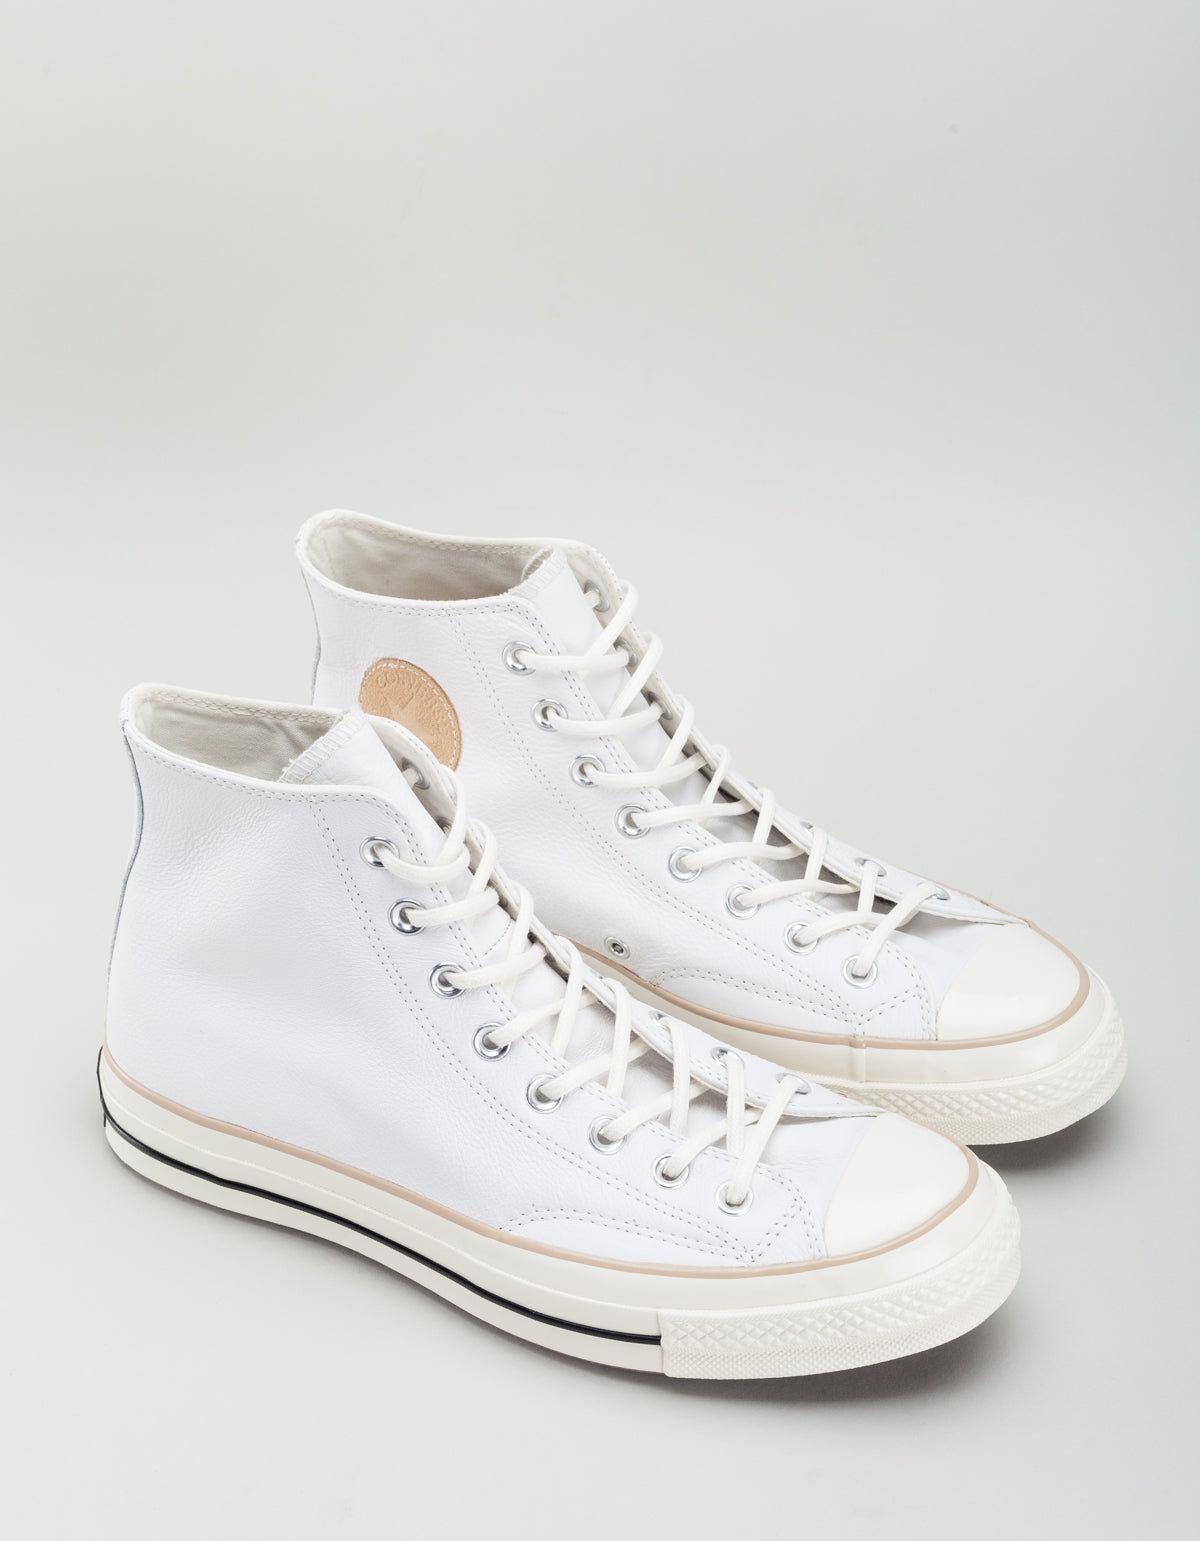 b6be2dda554 Converse Men s Chuck 70 Leather High Top White Light Fawn Egret ...